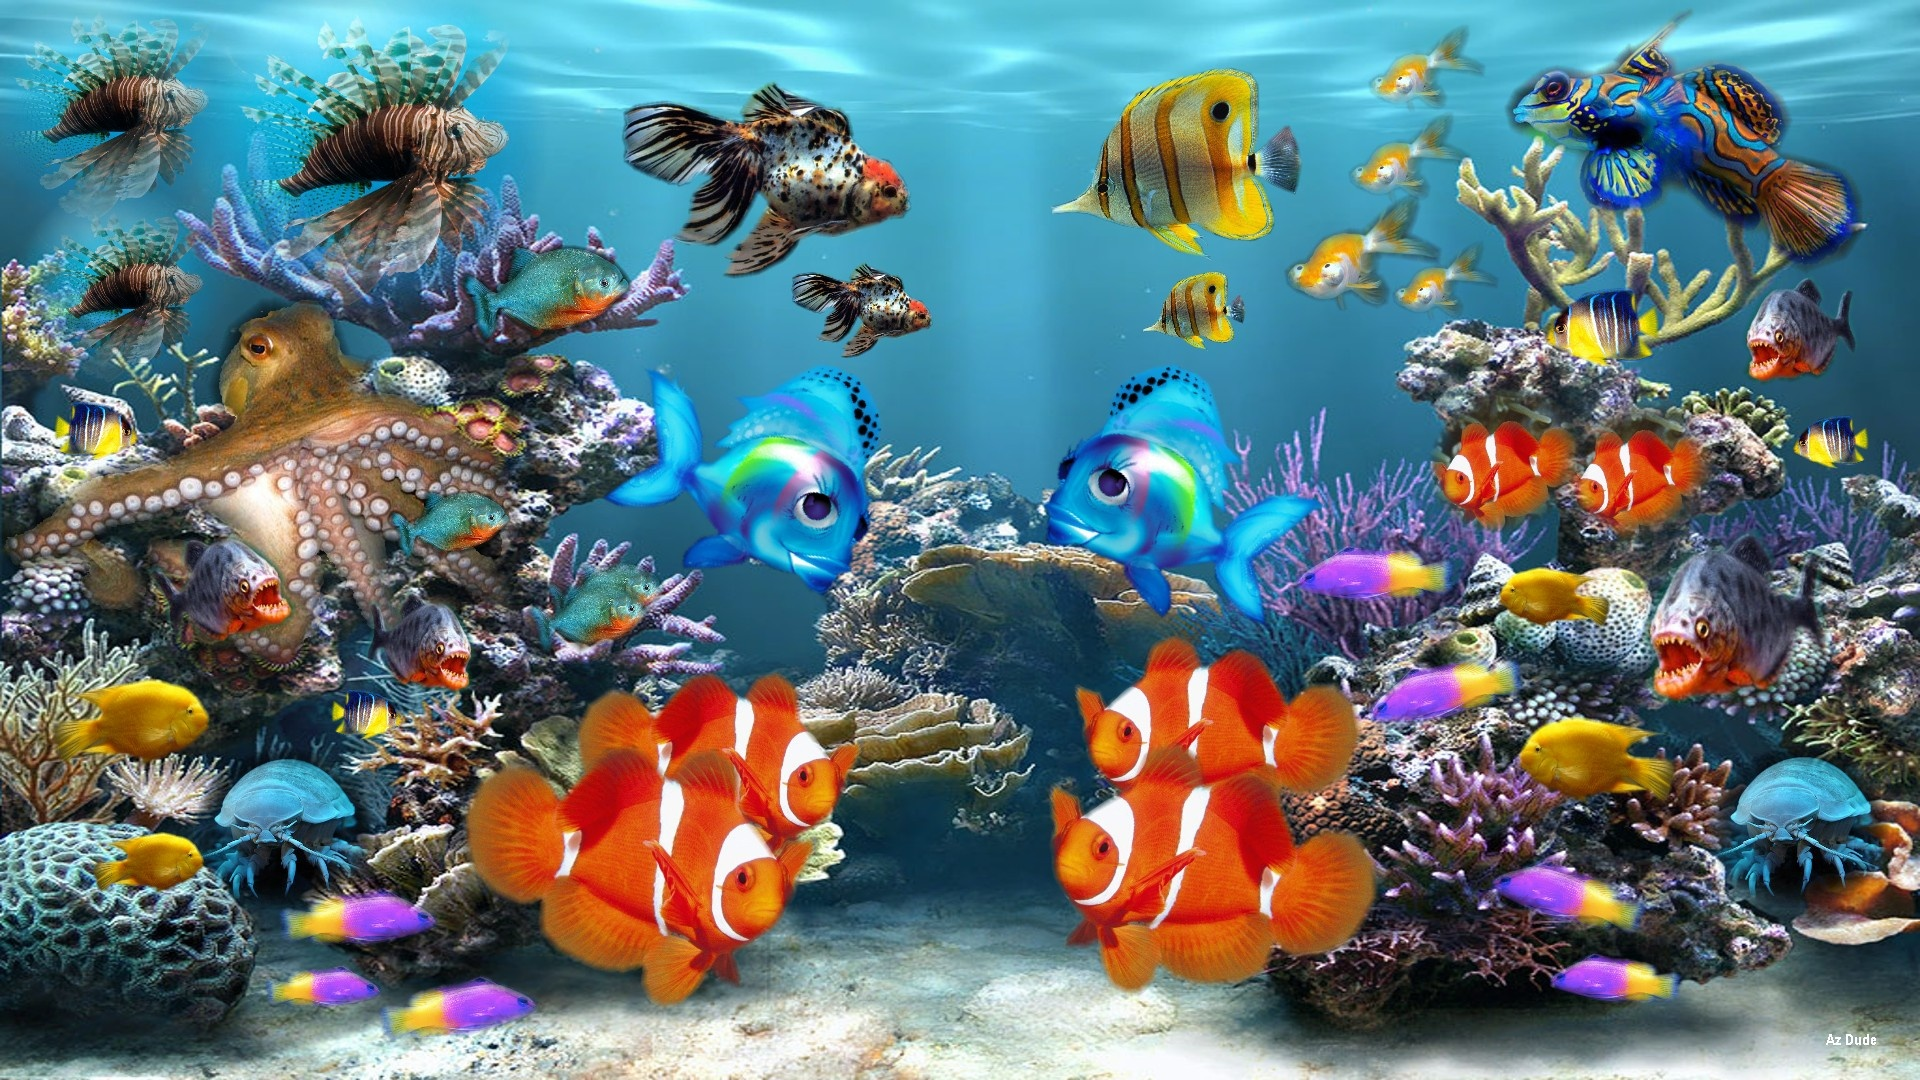 HD-Fish-Find-best-latest-HD-Fish-for-your-PC-desktop-background-mobile-phones-wallpaper-wpc5805740